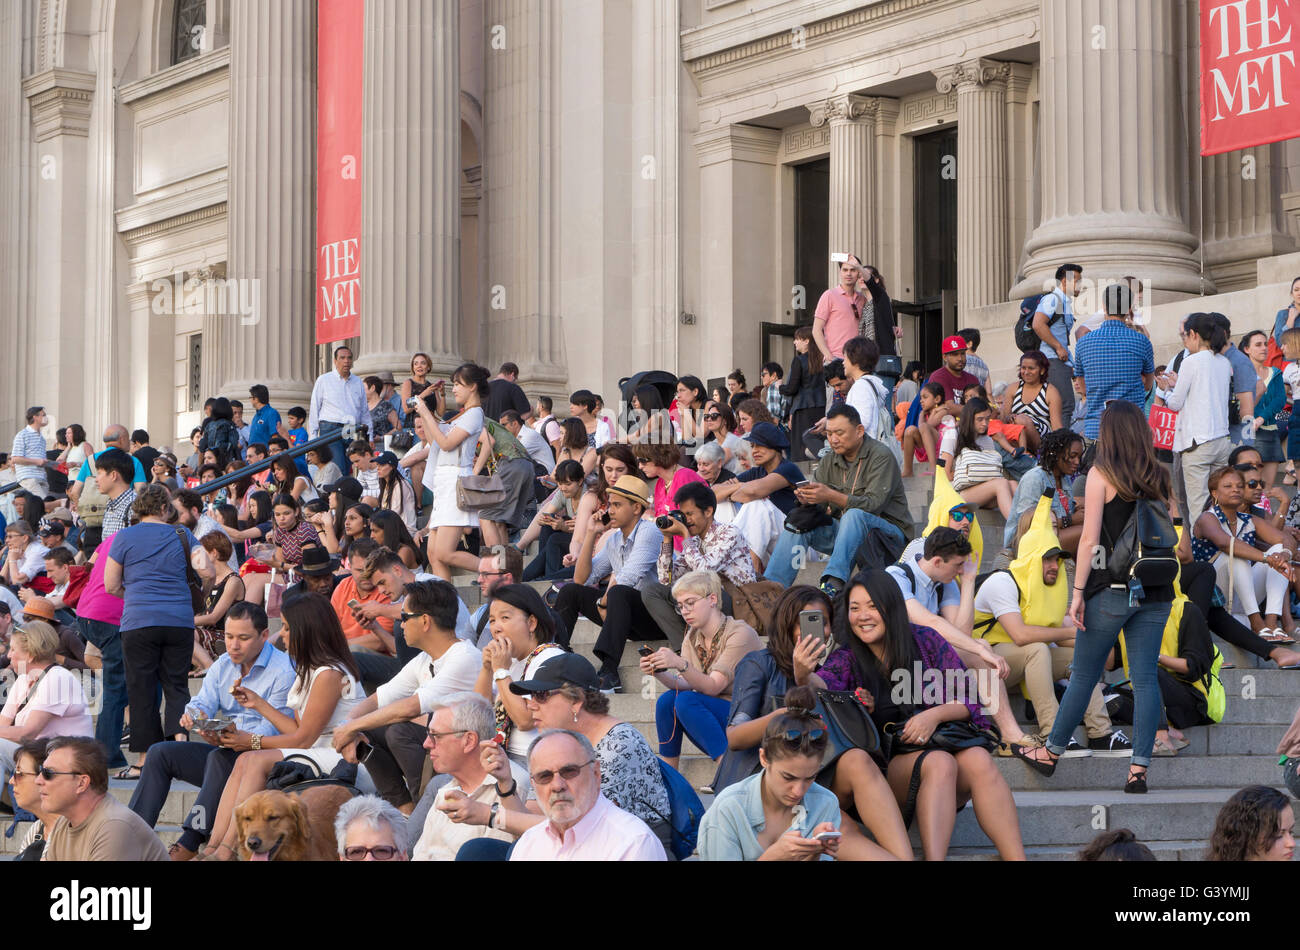 Crowd of people sitting on the steps of the Metropolitan Museum of Art, New York City. - Stock Image